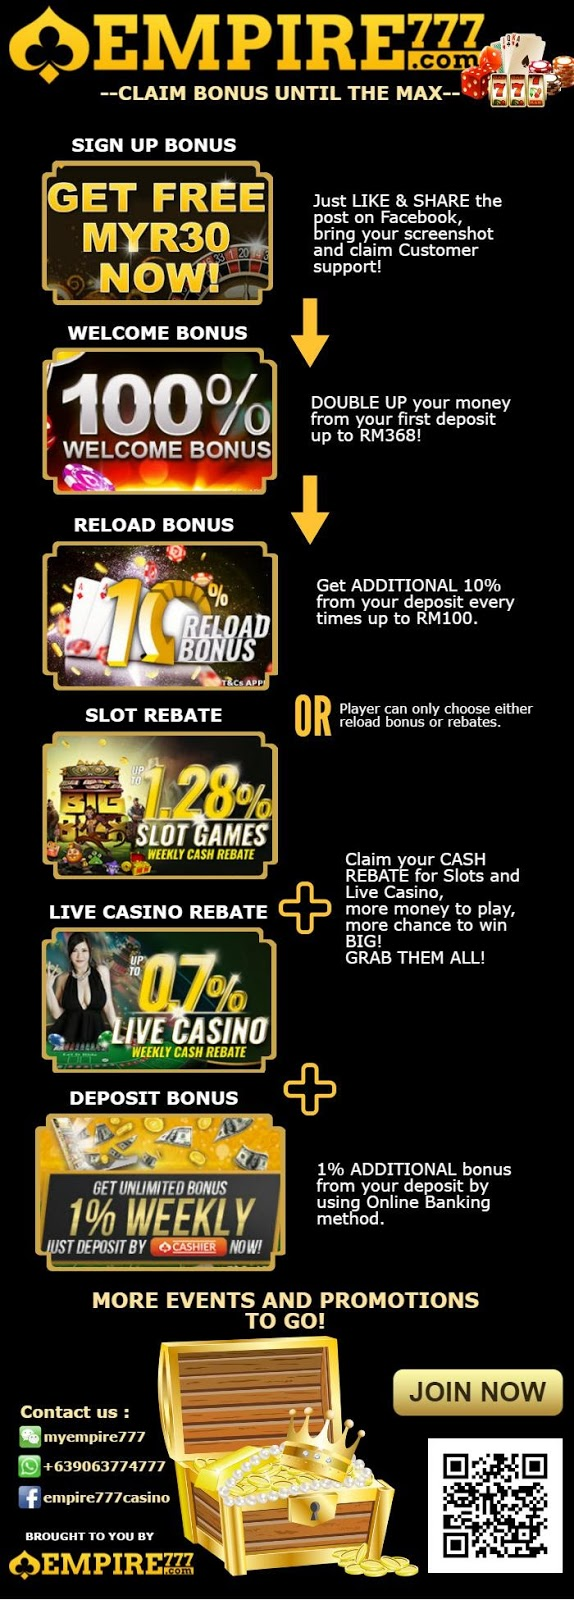 Claim Casino bonuses with EMPIRE777 Online Casino Malaysia!